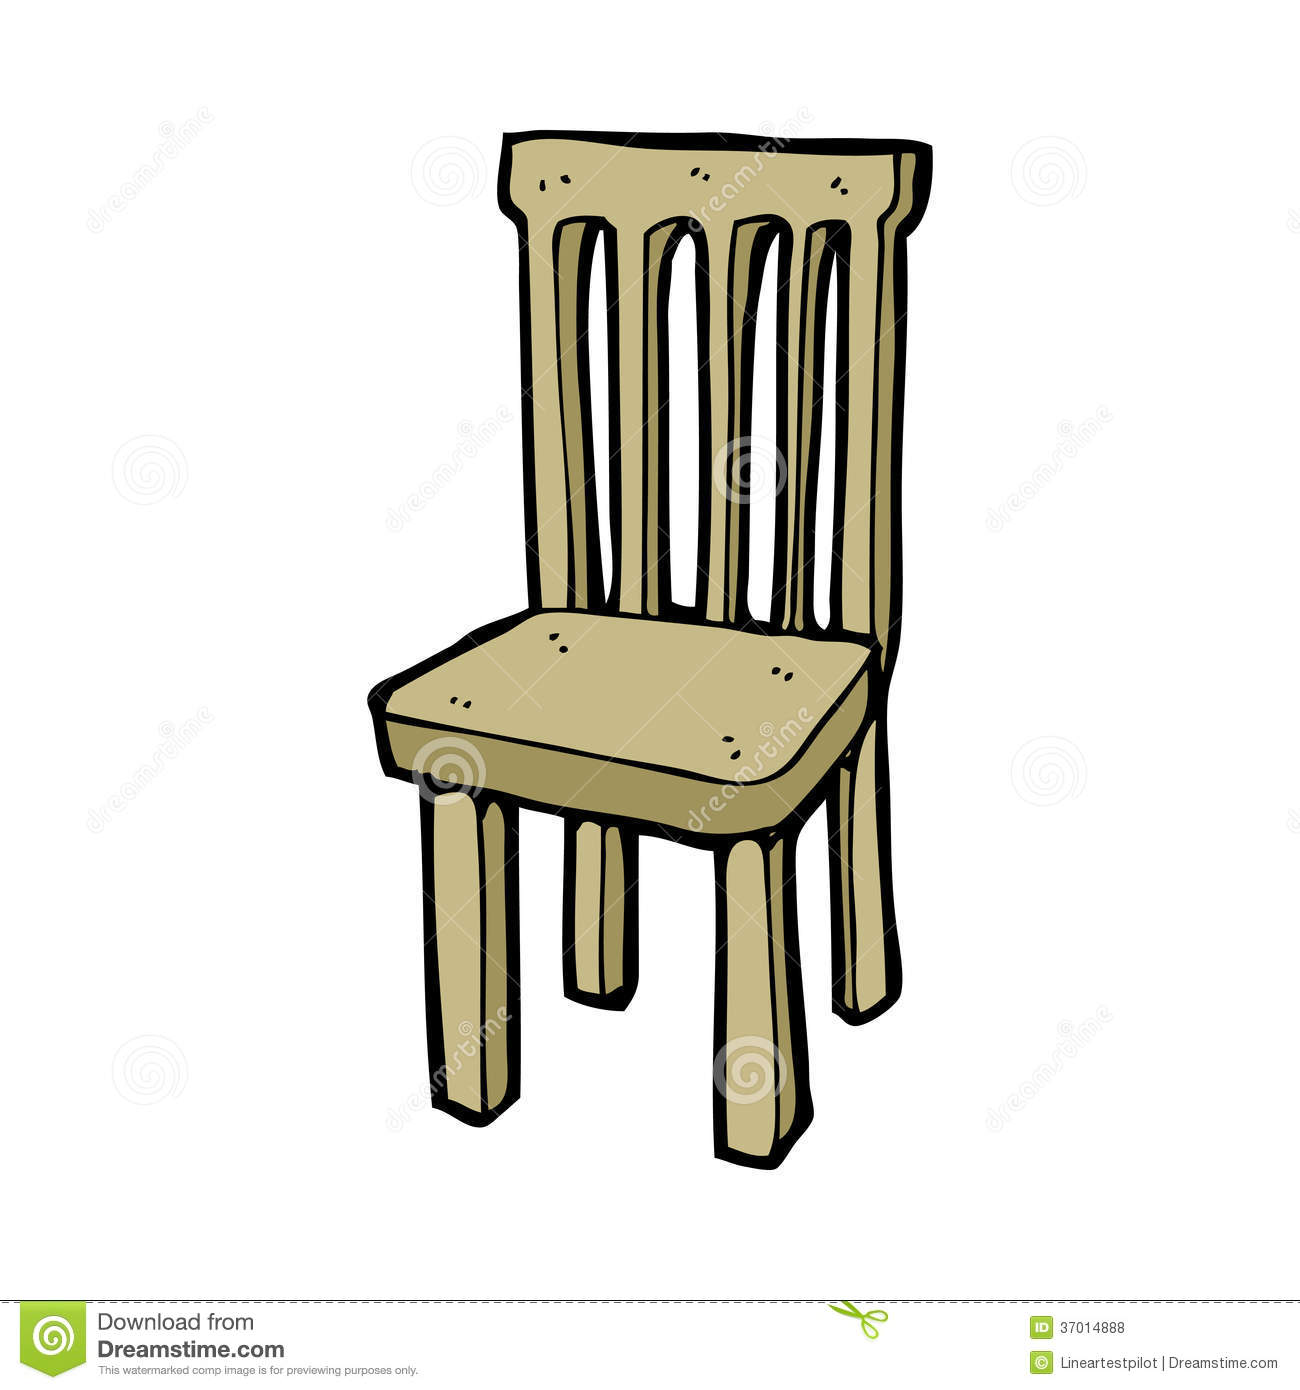 Royalty Free Stock Photos Cartoon Wooden Chair Hand Drawn Illustration Retro Style Vector Available Image37014888 on hand clip art